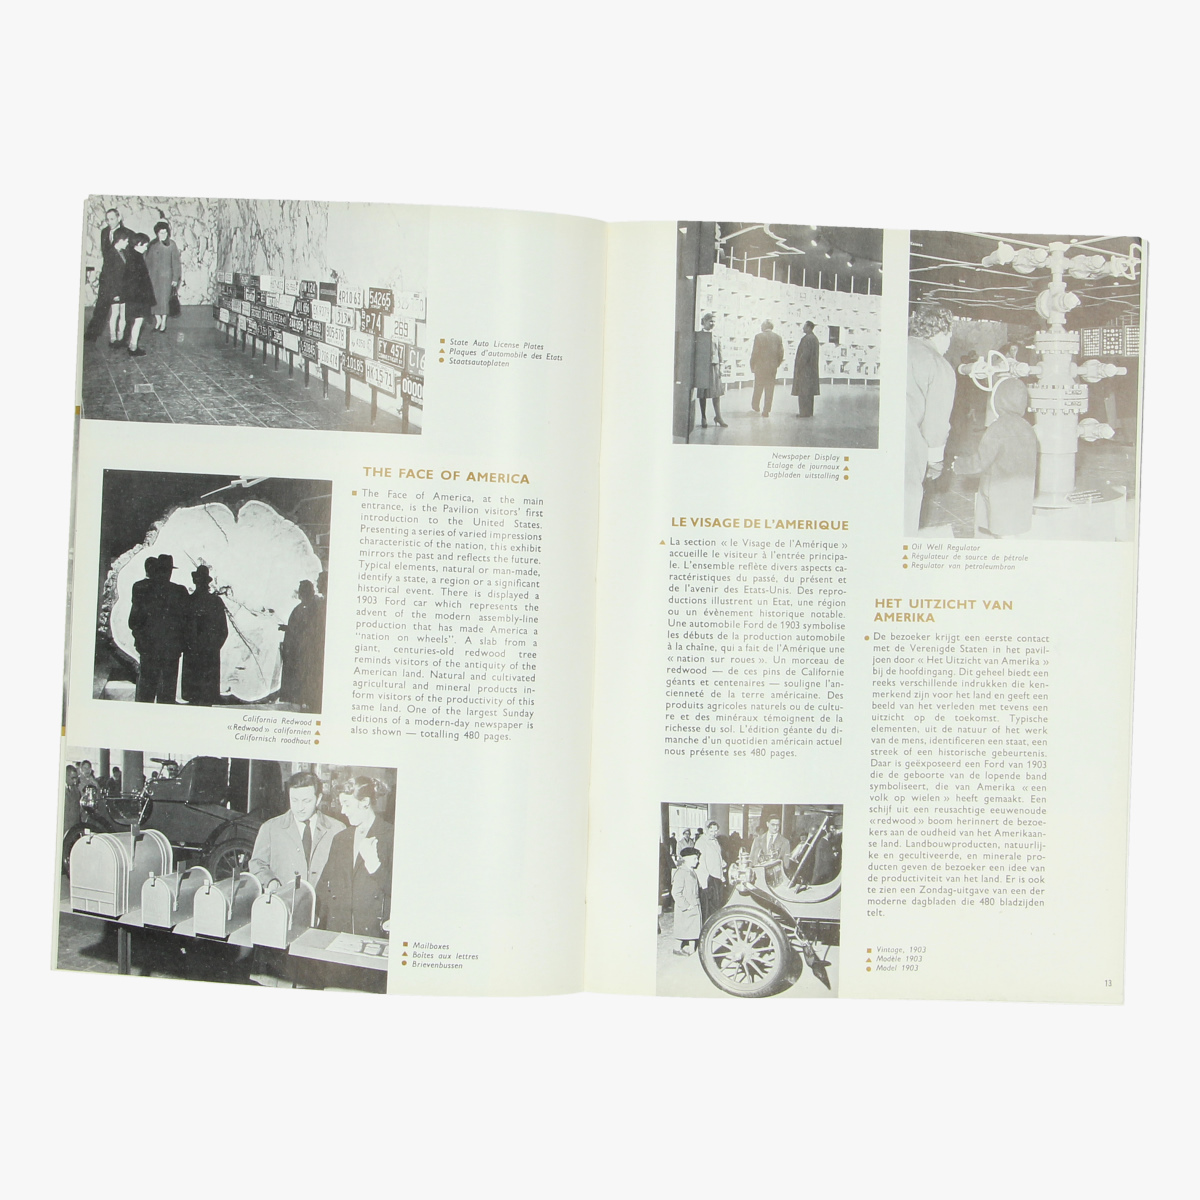 Afbeeldingen van expo 58 official united states guide book brussels world's fair 1958